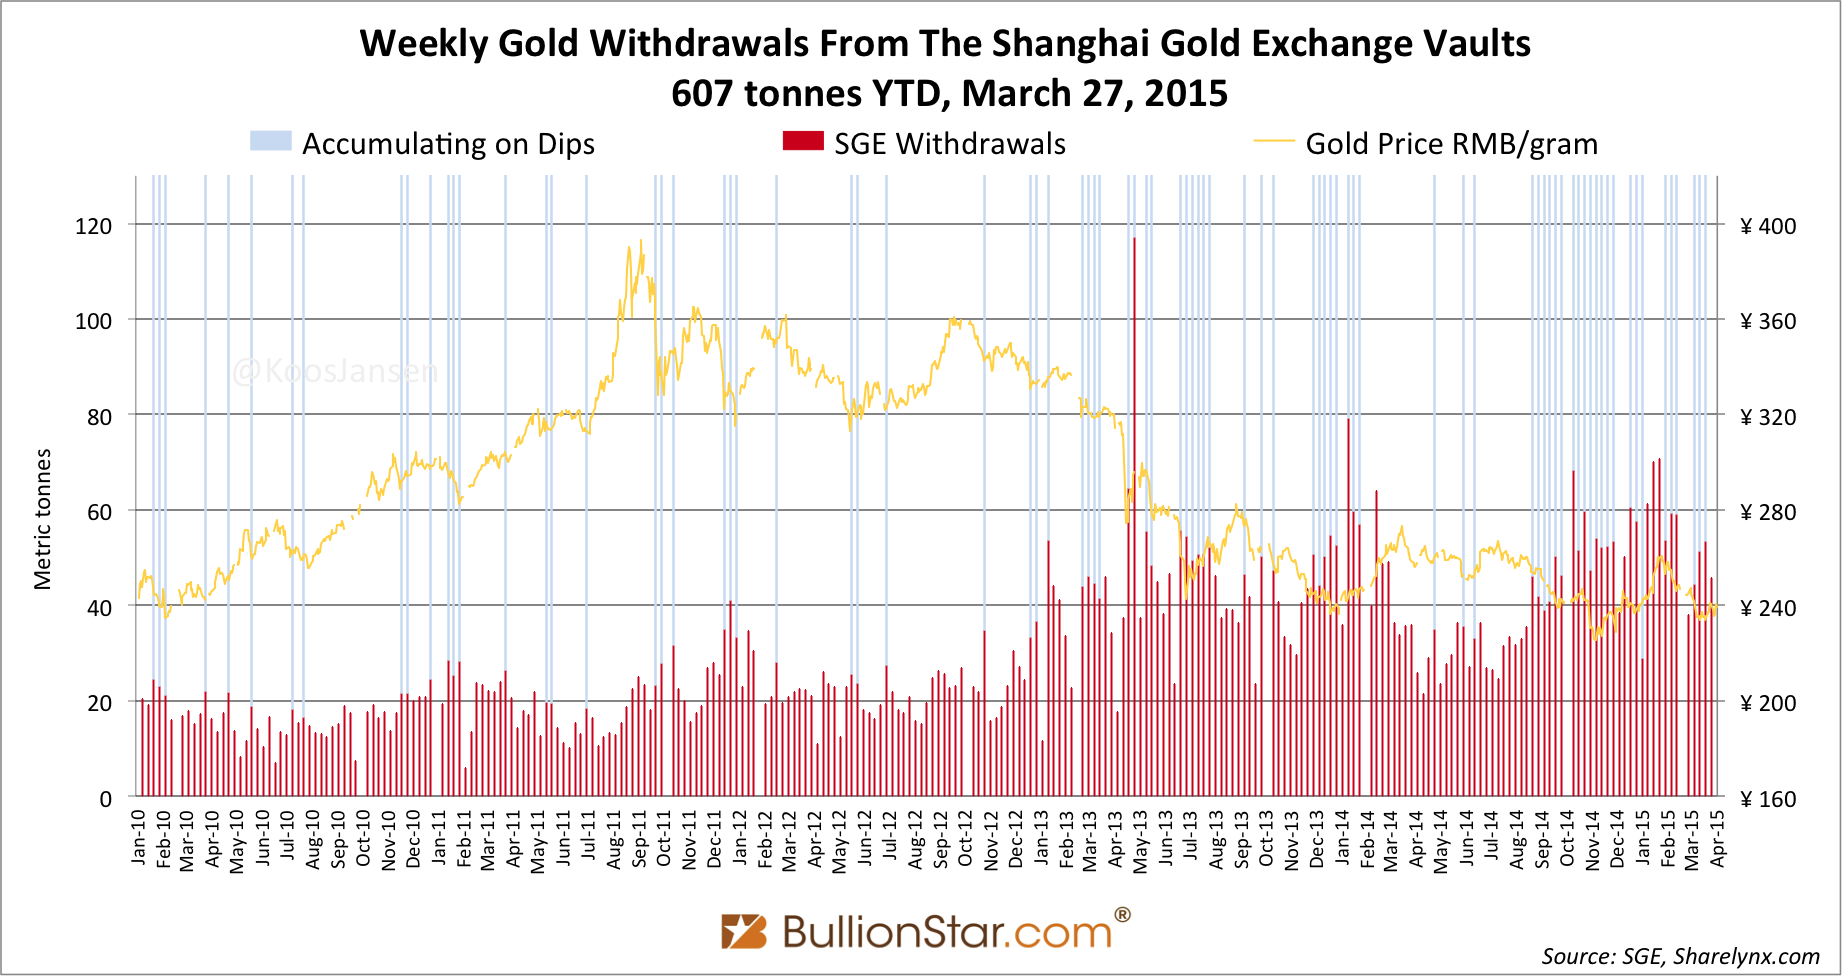 Shanghai Gold Exchange SGE withdrawals delivery 2015 week 12 dips x